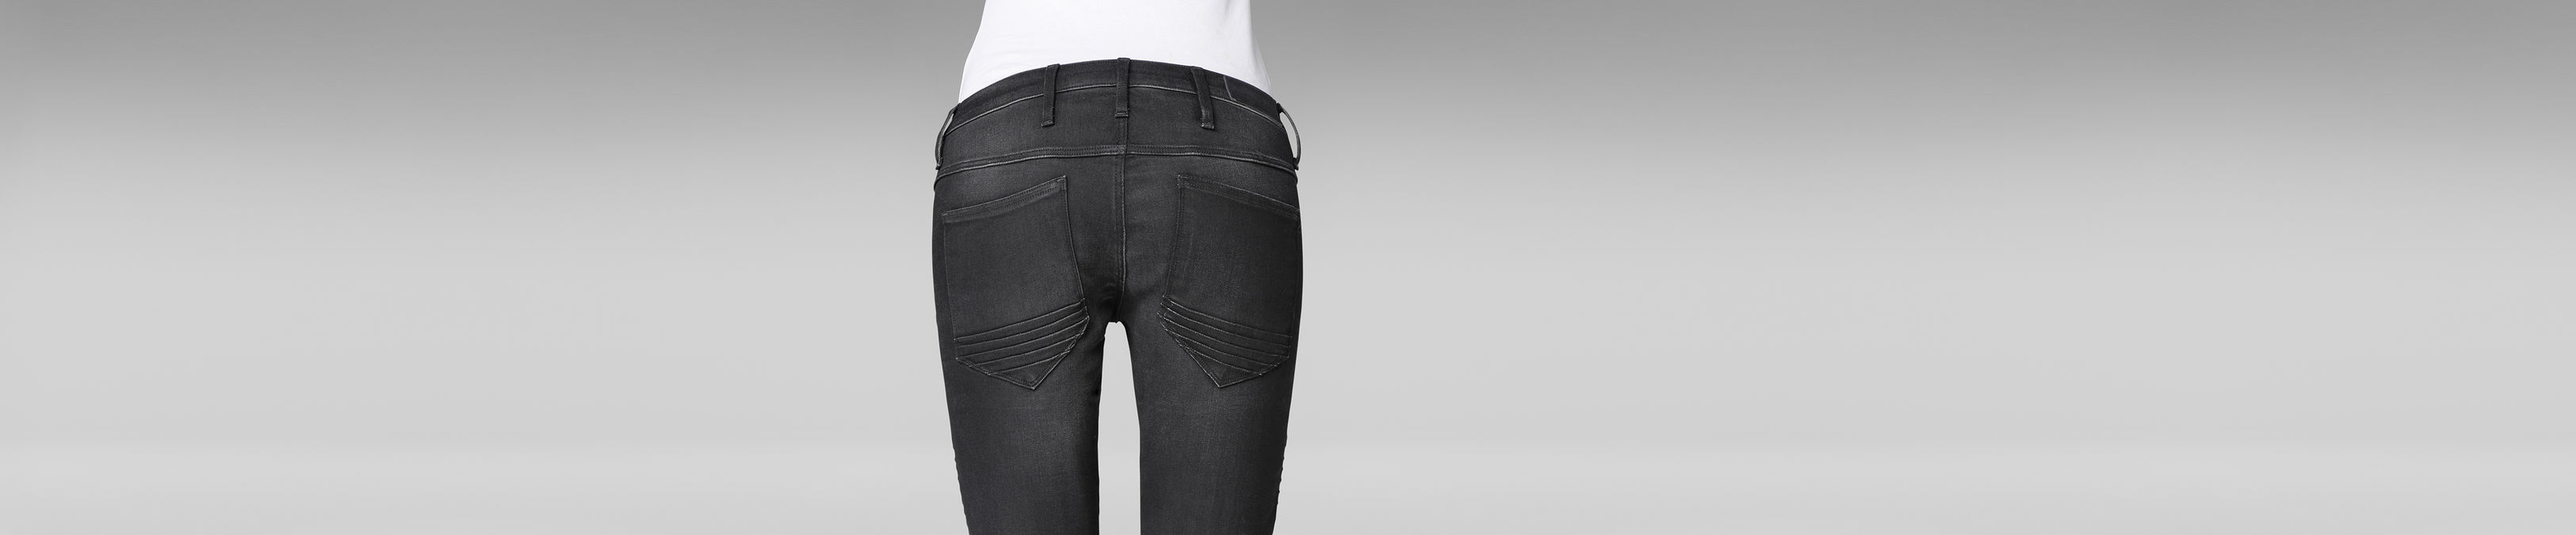 5620 G Star Elwood Custom Slim Tapered Jeans | G Star RAW®